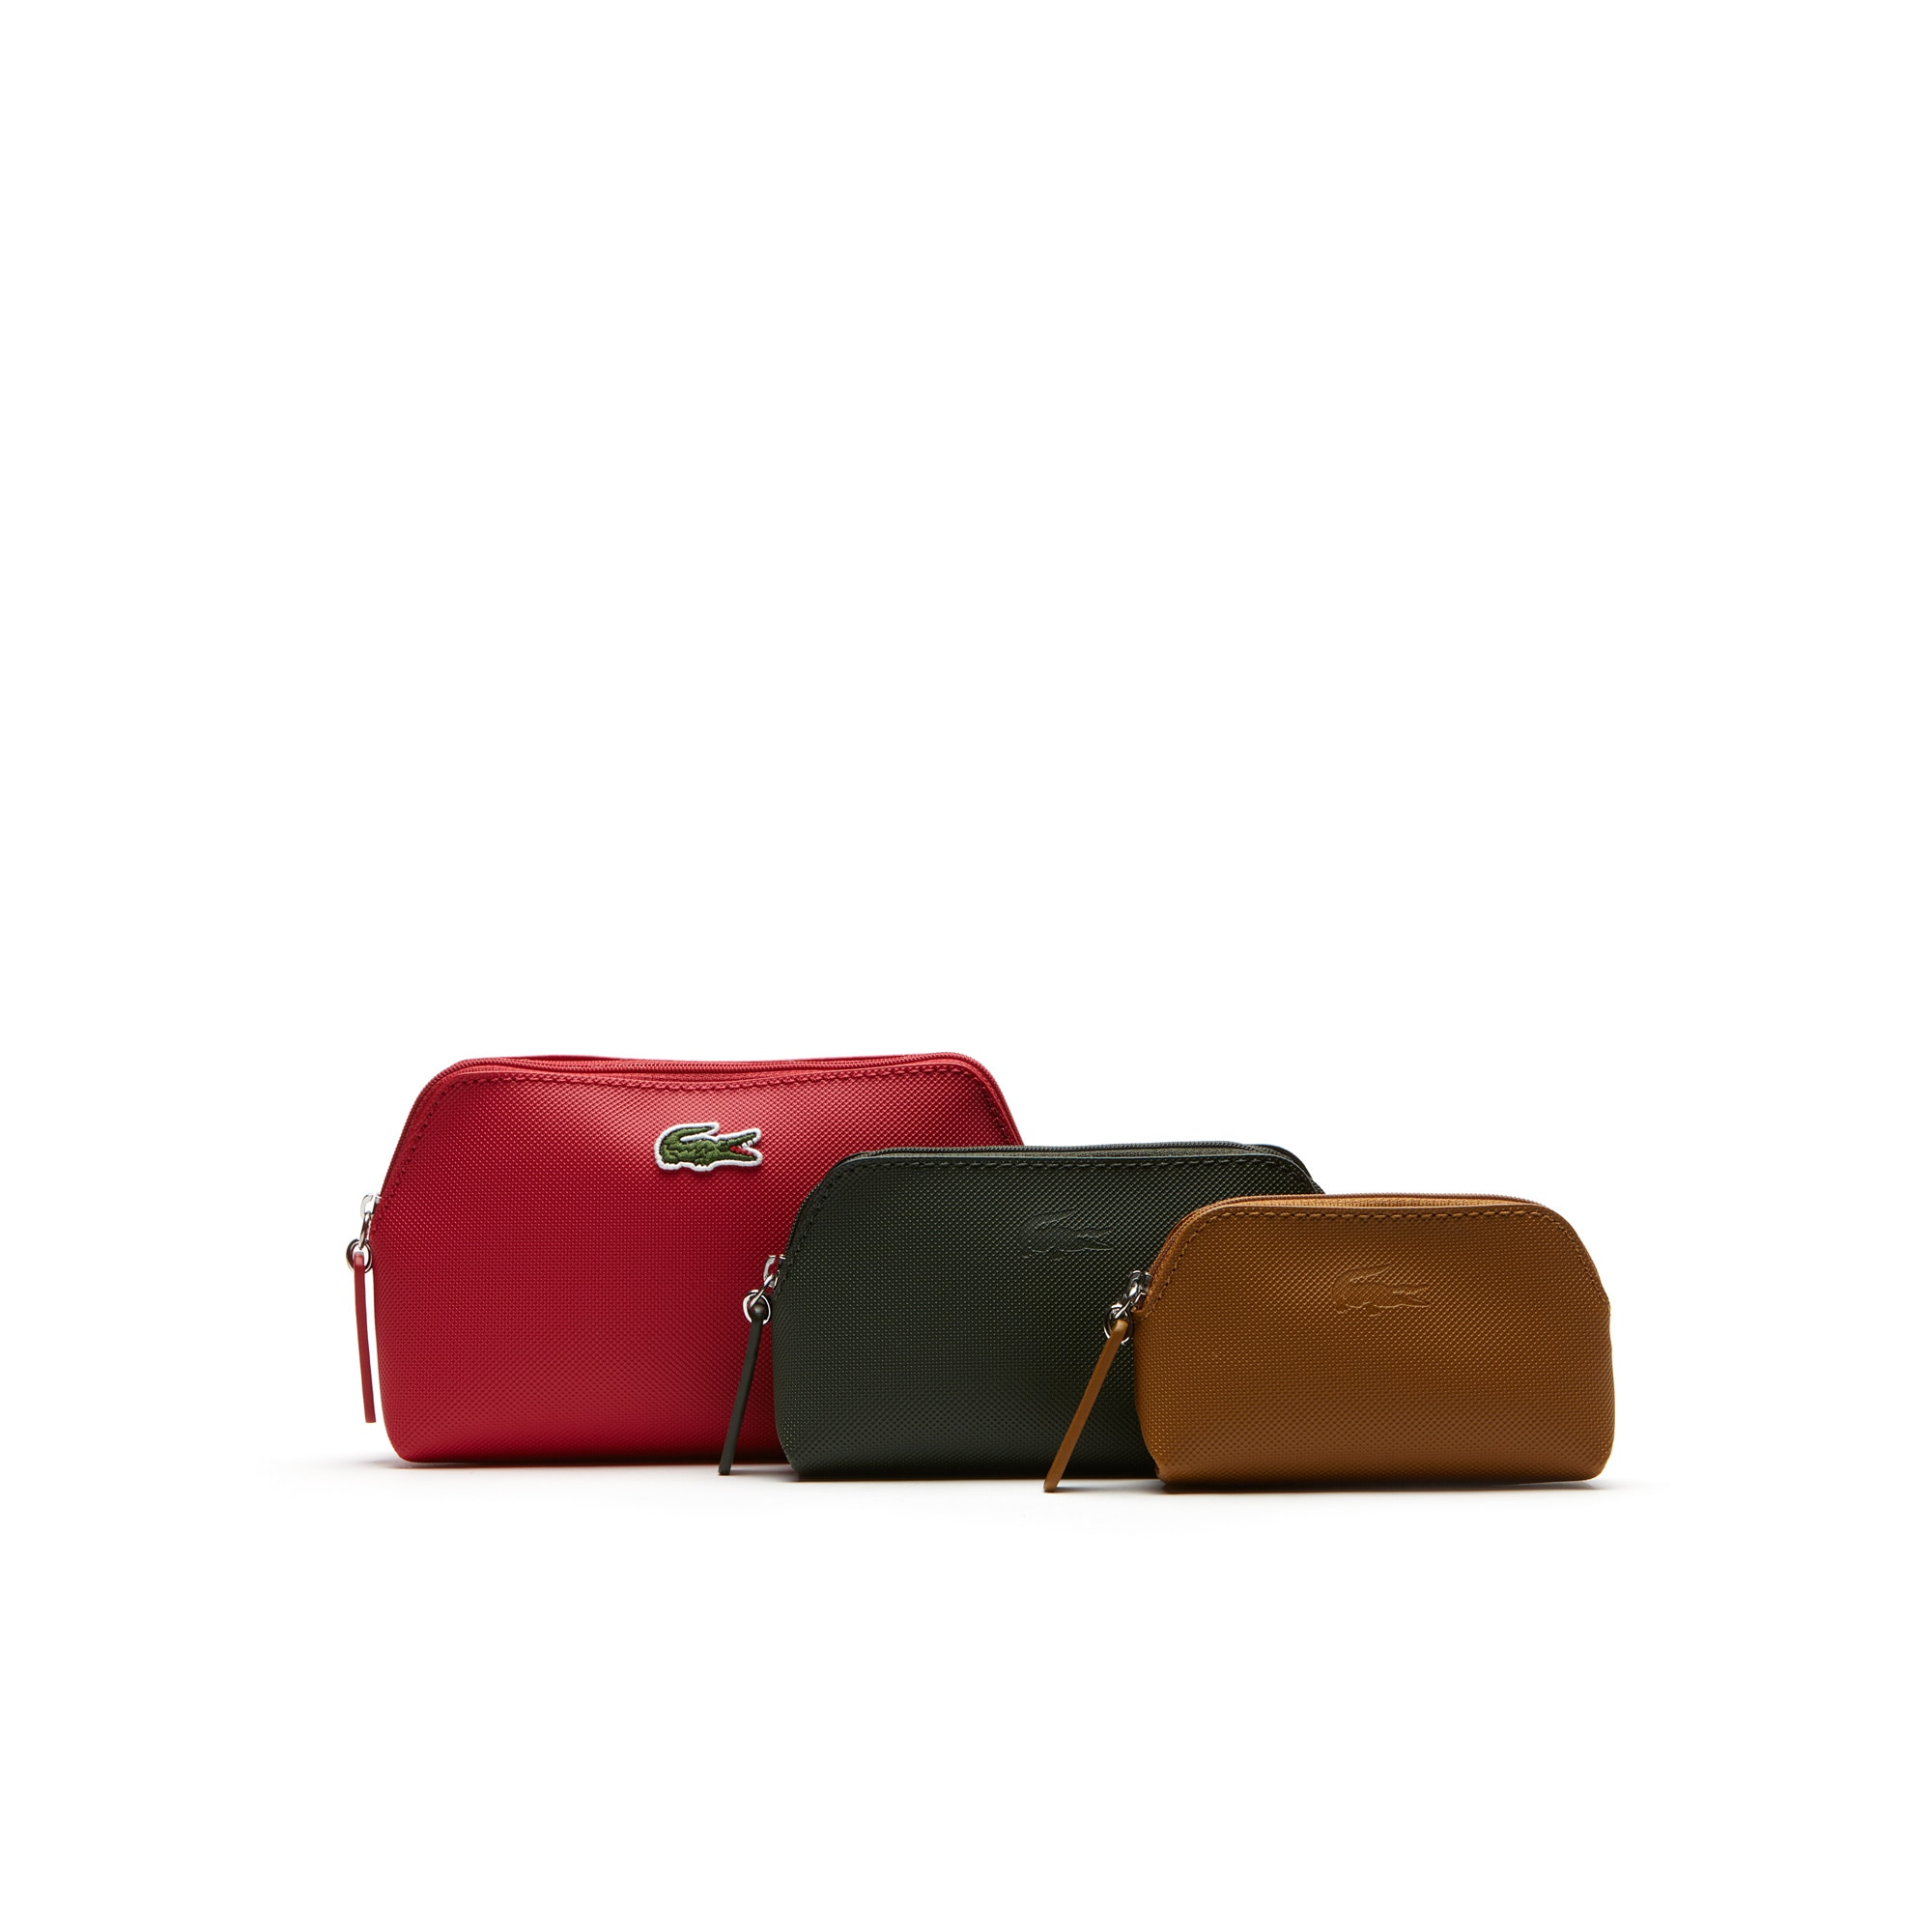 Trio di trousse make-up